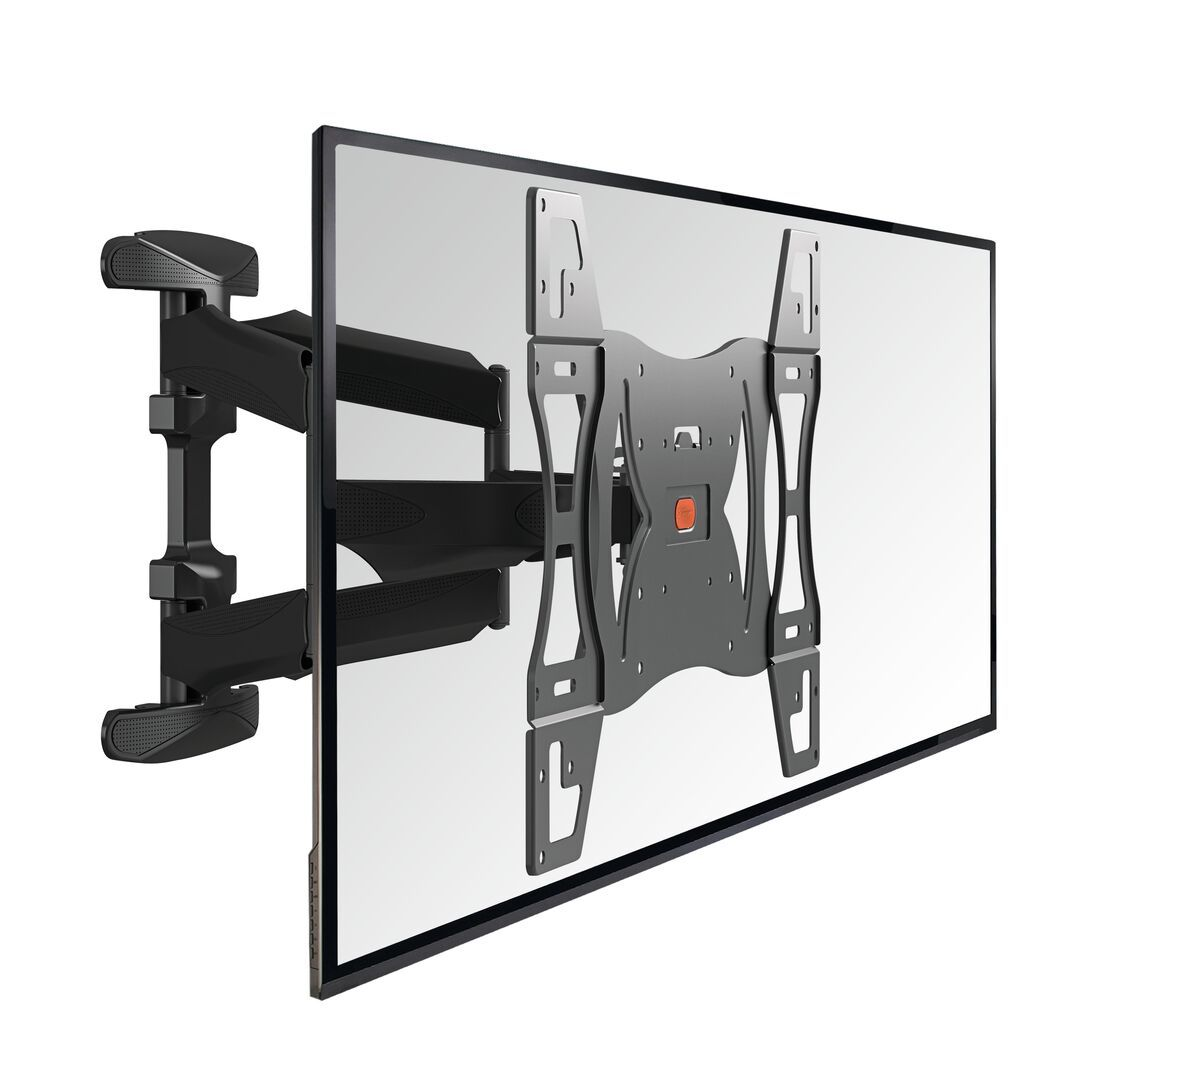 Vogel's BASE 45 L Full-Motion TV Wall Mount - Suitable for 40 up to 82 inch TVs - Full motion (up to 180°) - Tilt up to 15° - Product